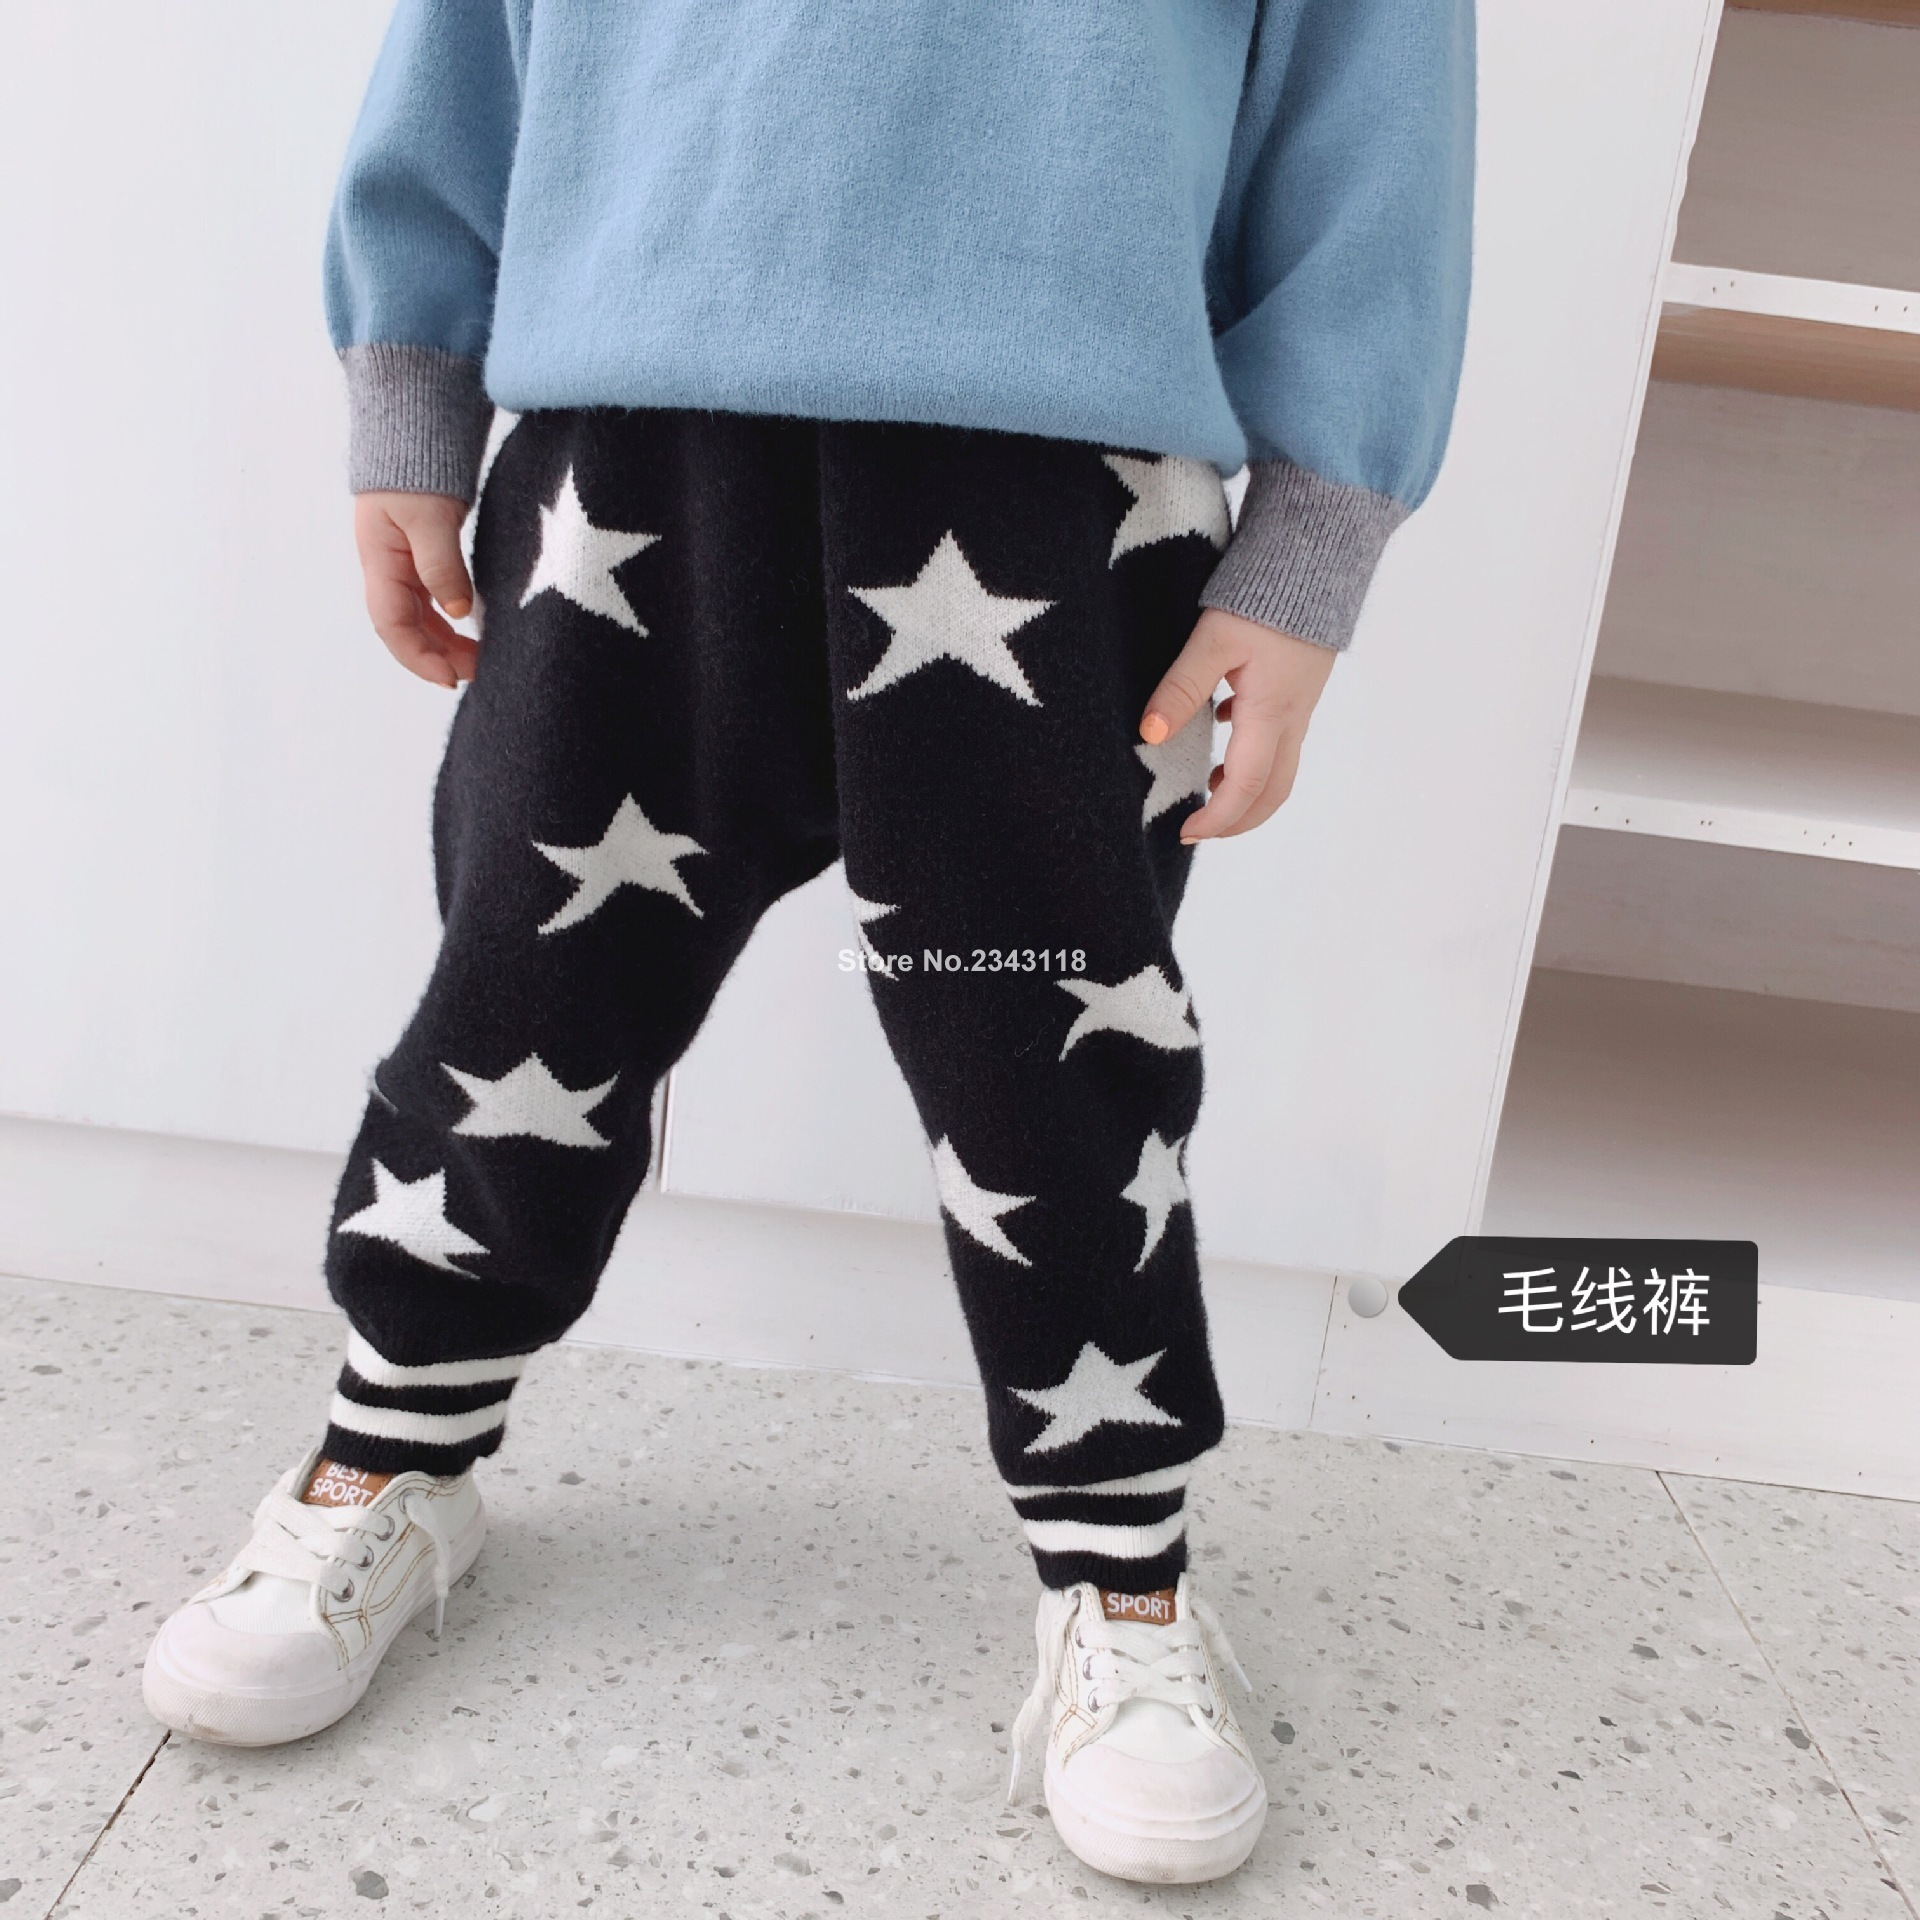 Autumen Winter Kids Warm Woolen Yarn Knitted Pentacle Pattern Pants Boys Girls All-match Casual Ankle Banded Pants